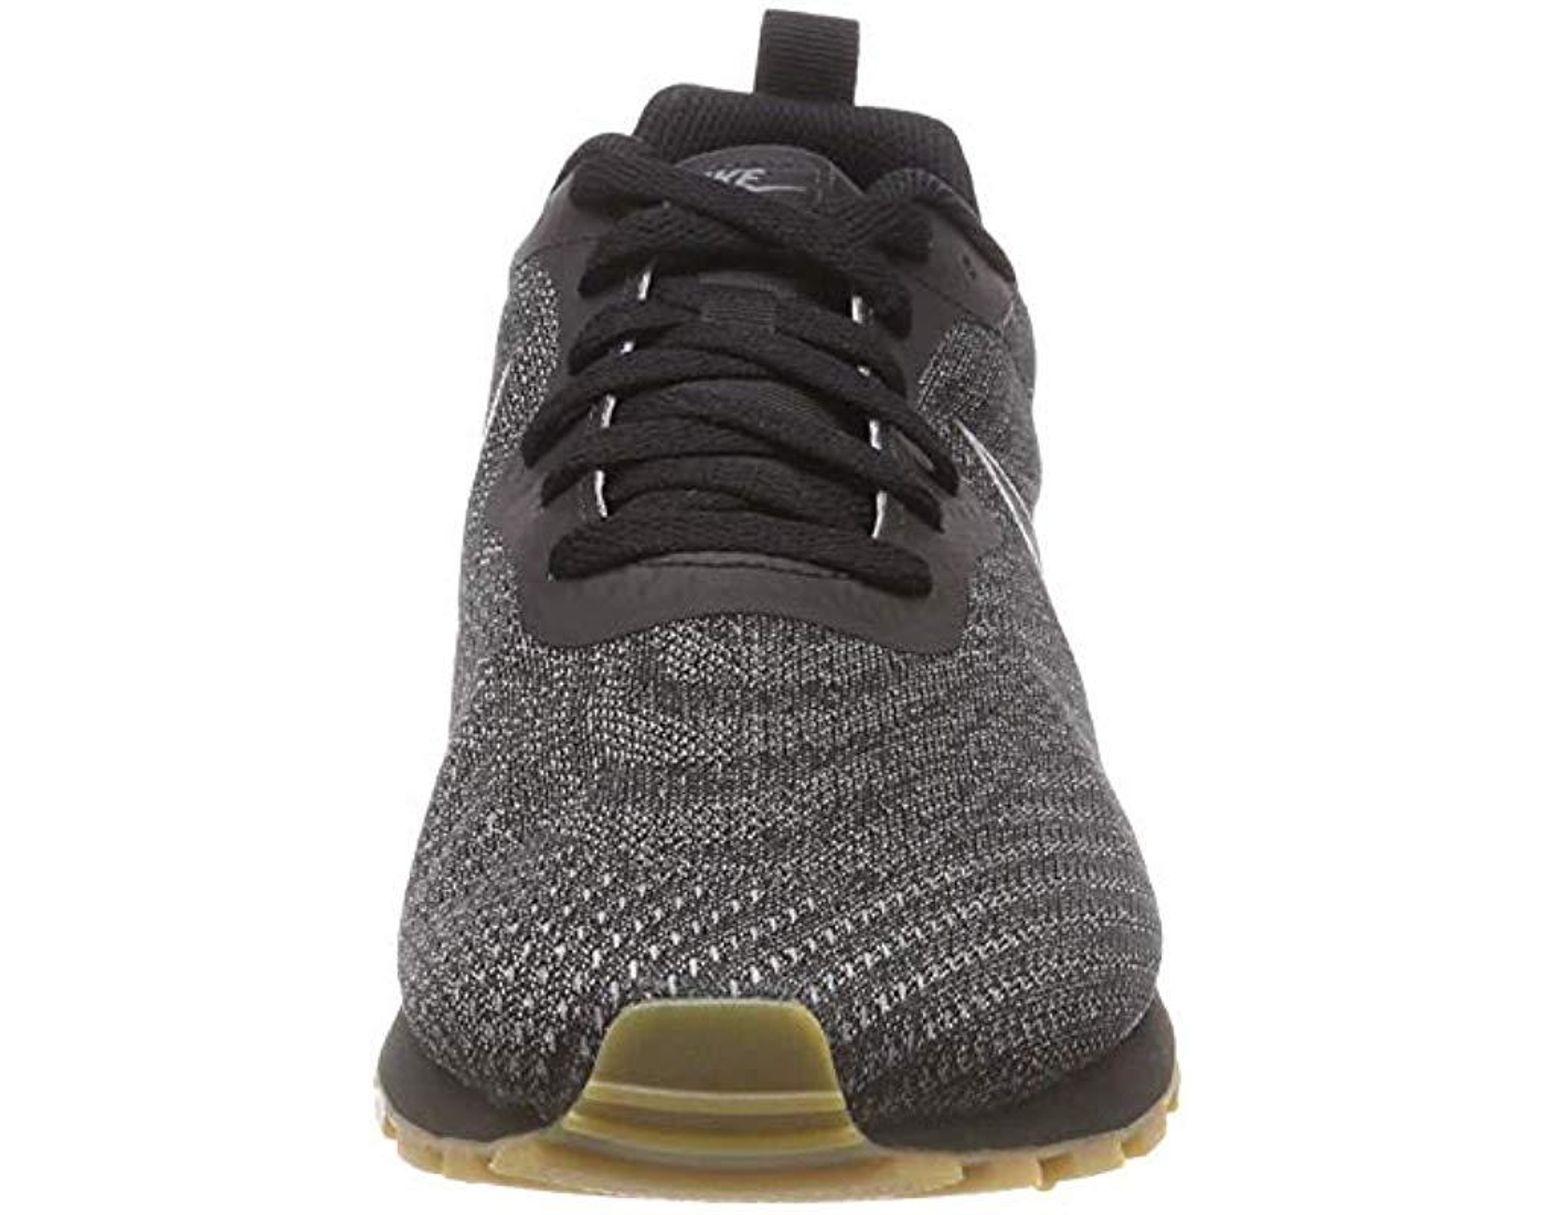 a7ee1a341 Nike Md Runner 2 Eng Mesh Fitness Shoes in Black for Men - Save 30% - Lyst